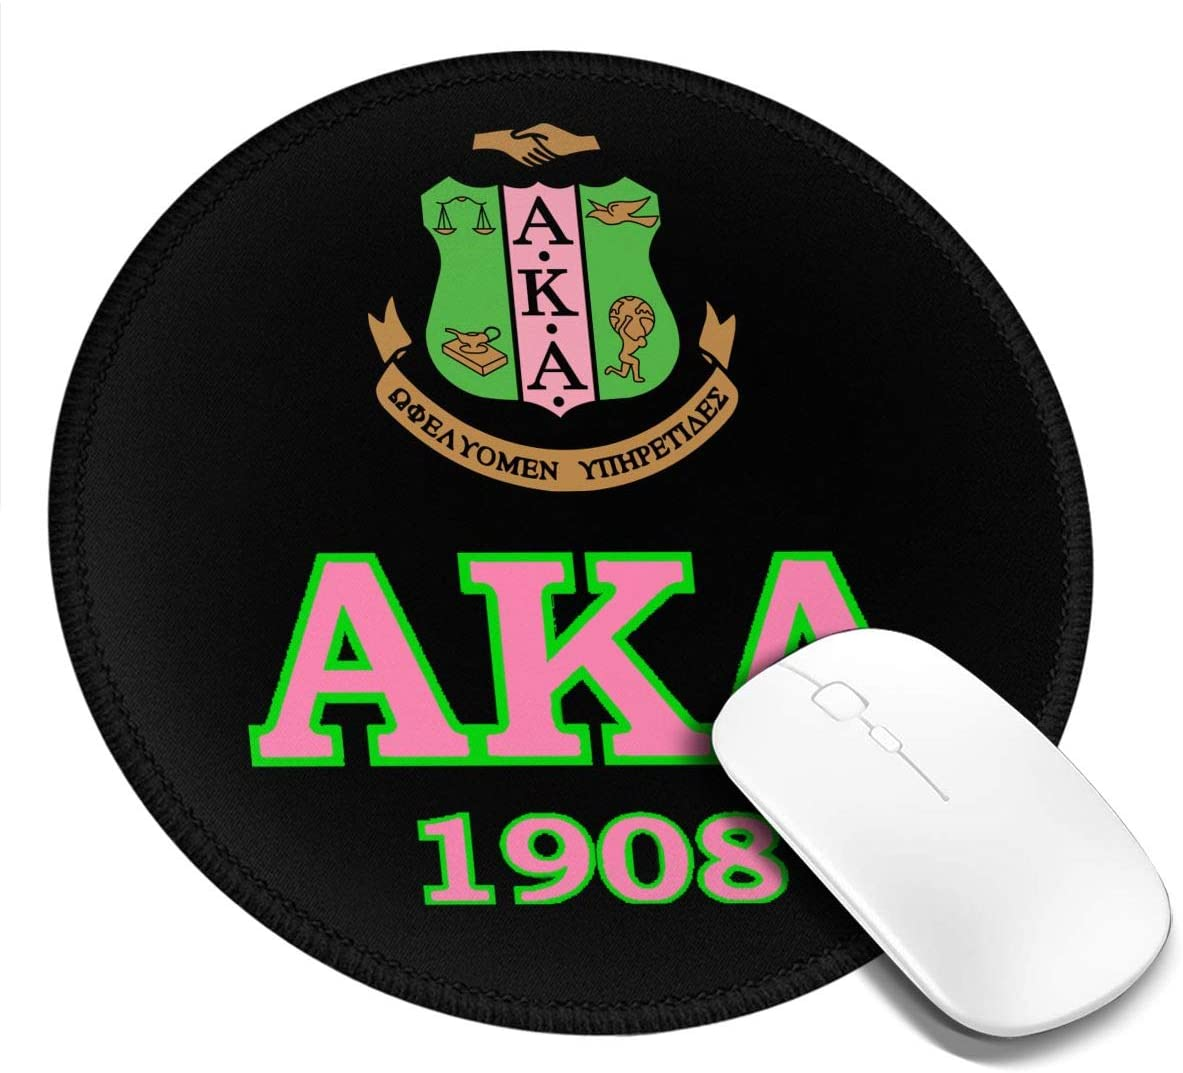 Customized Round Mouse Pad,Alpha Kappa Alpha Mouse Pad Non-Slip Rubber Comfortable Computer Mouse Pad 7.9x7.9in